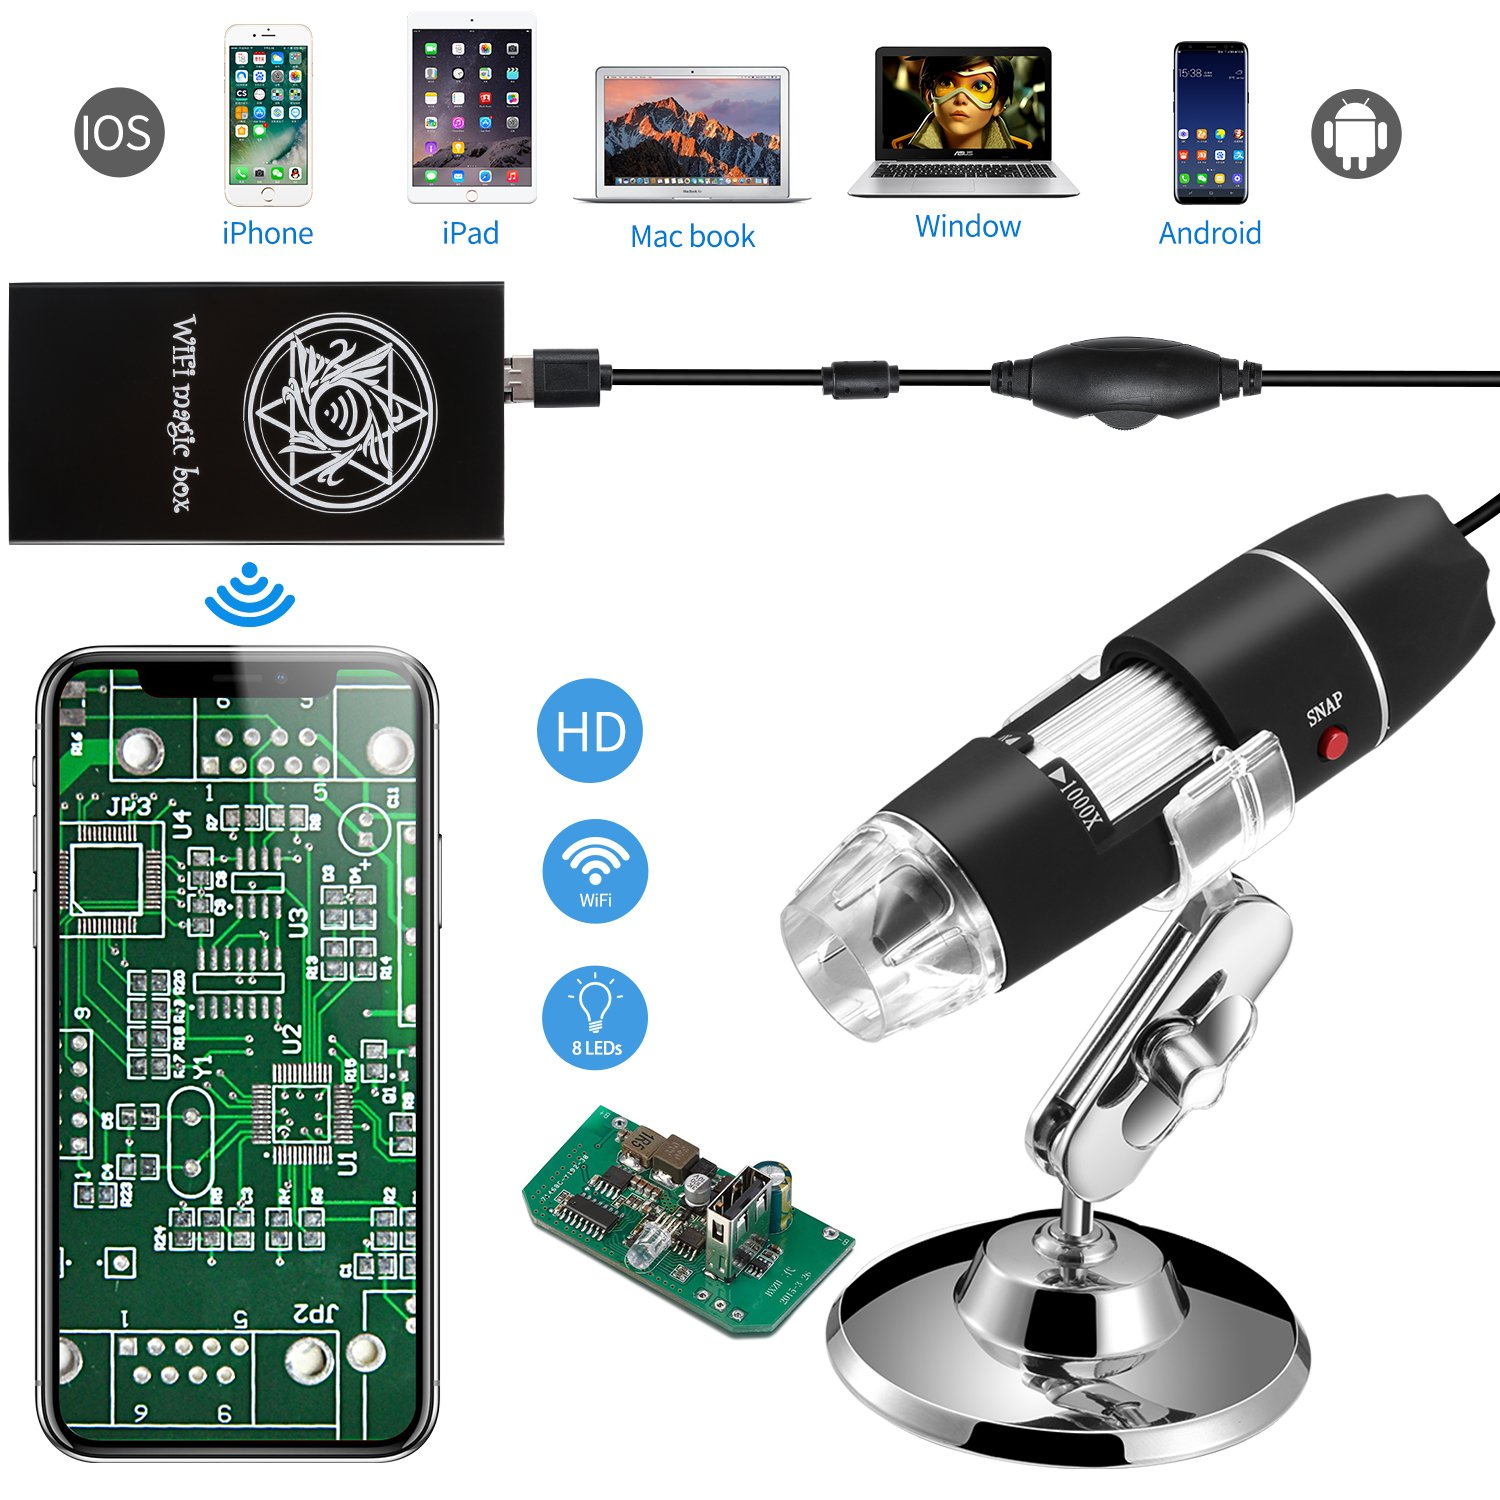 Jiusion WiFi USB Digital Handheld Microscope, 40 to 1000x Wireless Magnification Endoscope 8 LED Mini Camera with Phone Suction, Metal Stand and Case, Compatible with iPhone iPad Mac Window Android by Jiusion